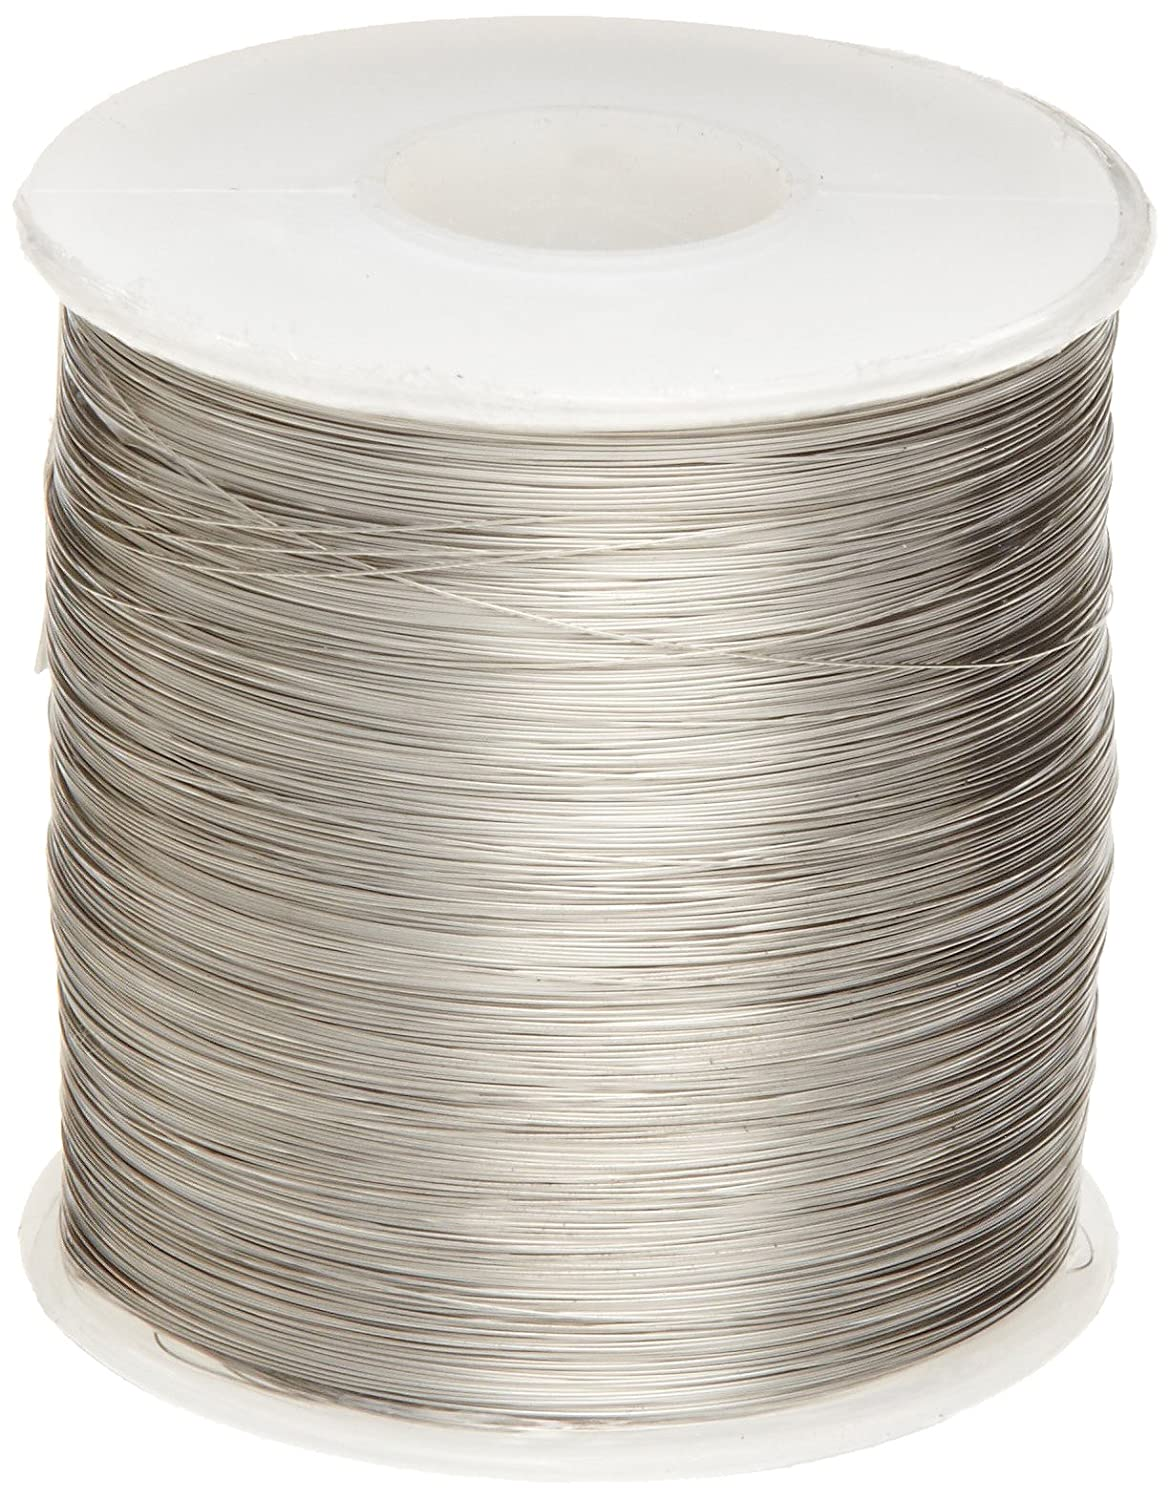 Direct 5 ☆ very popular sale of manufacturer Nickel Chomium Resistance Wire Chromel-A Bright 32 AWG 0.008